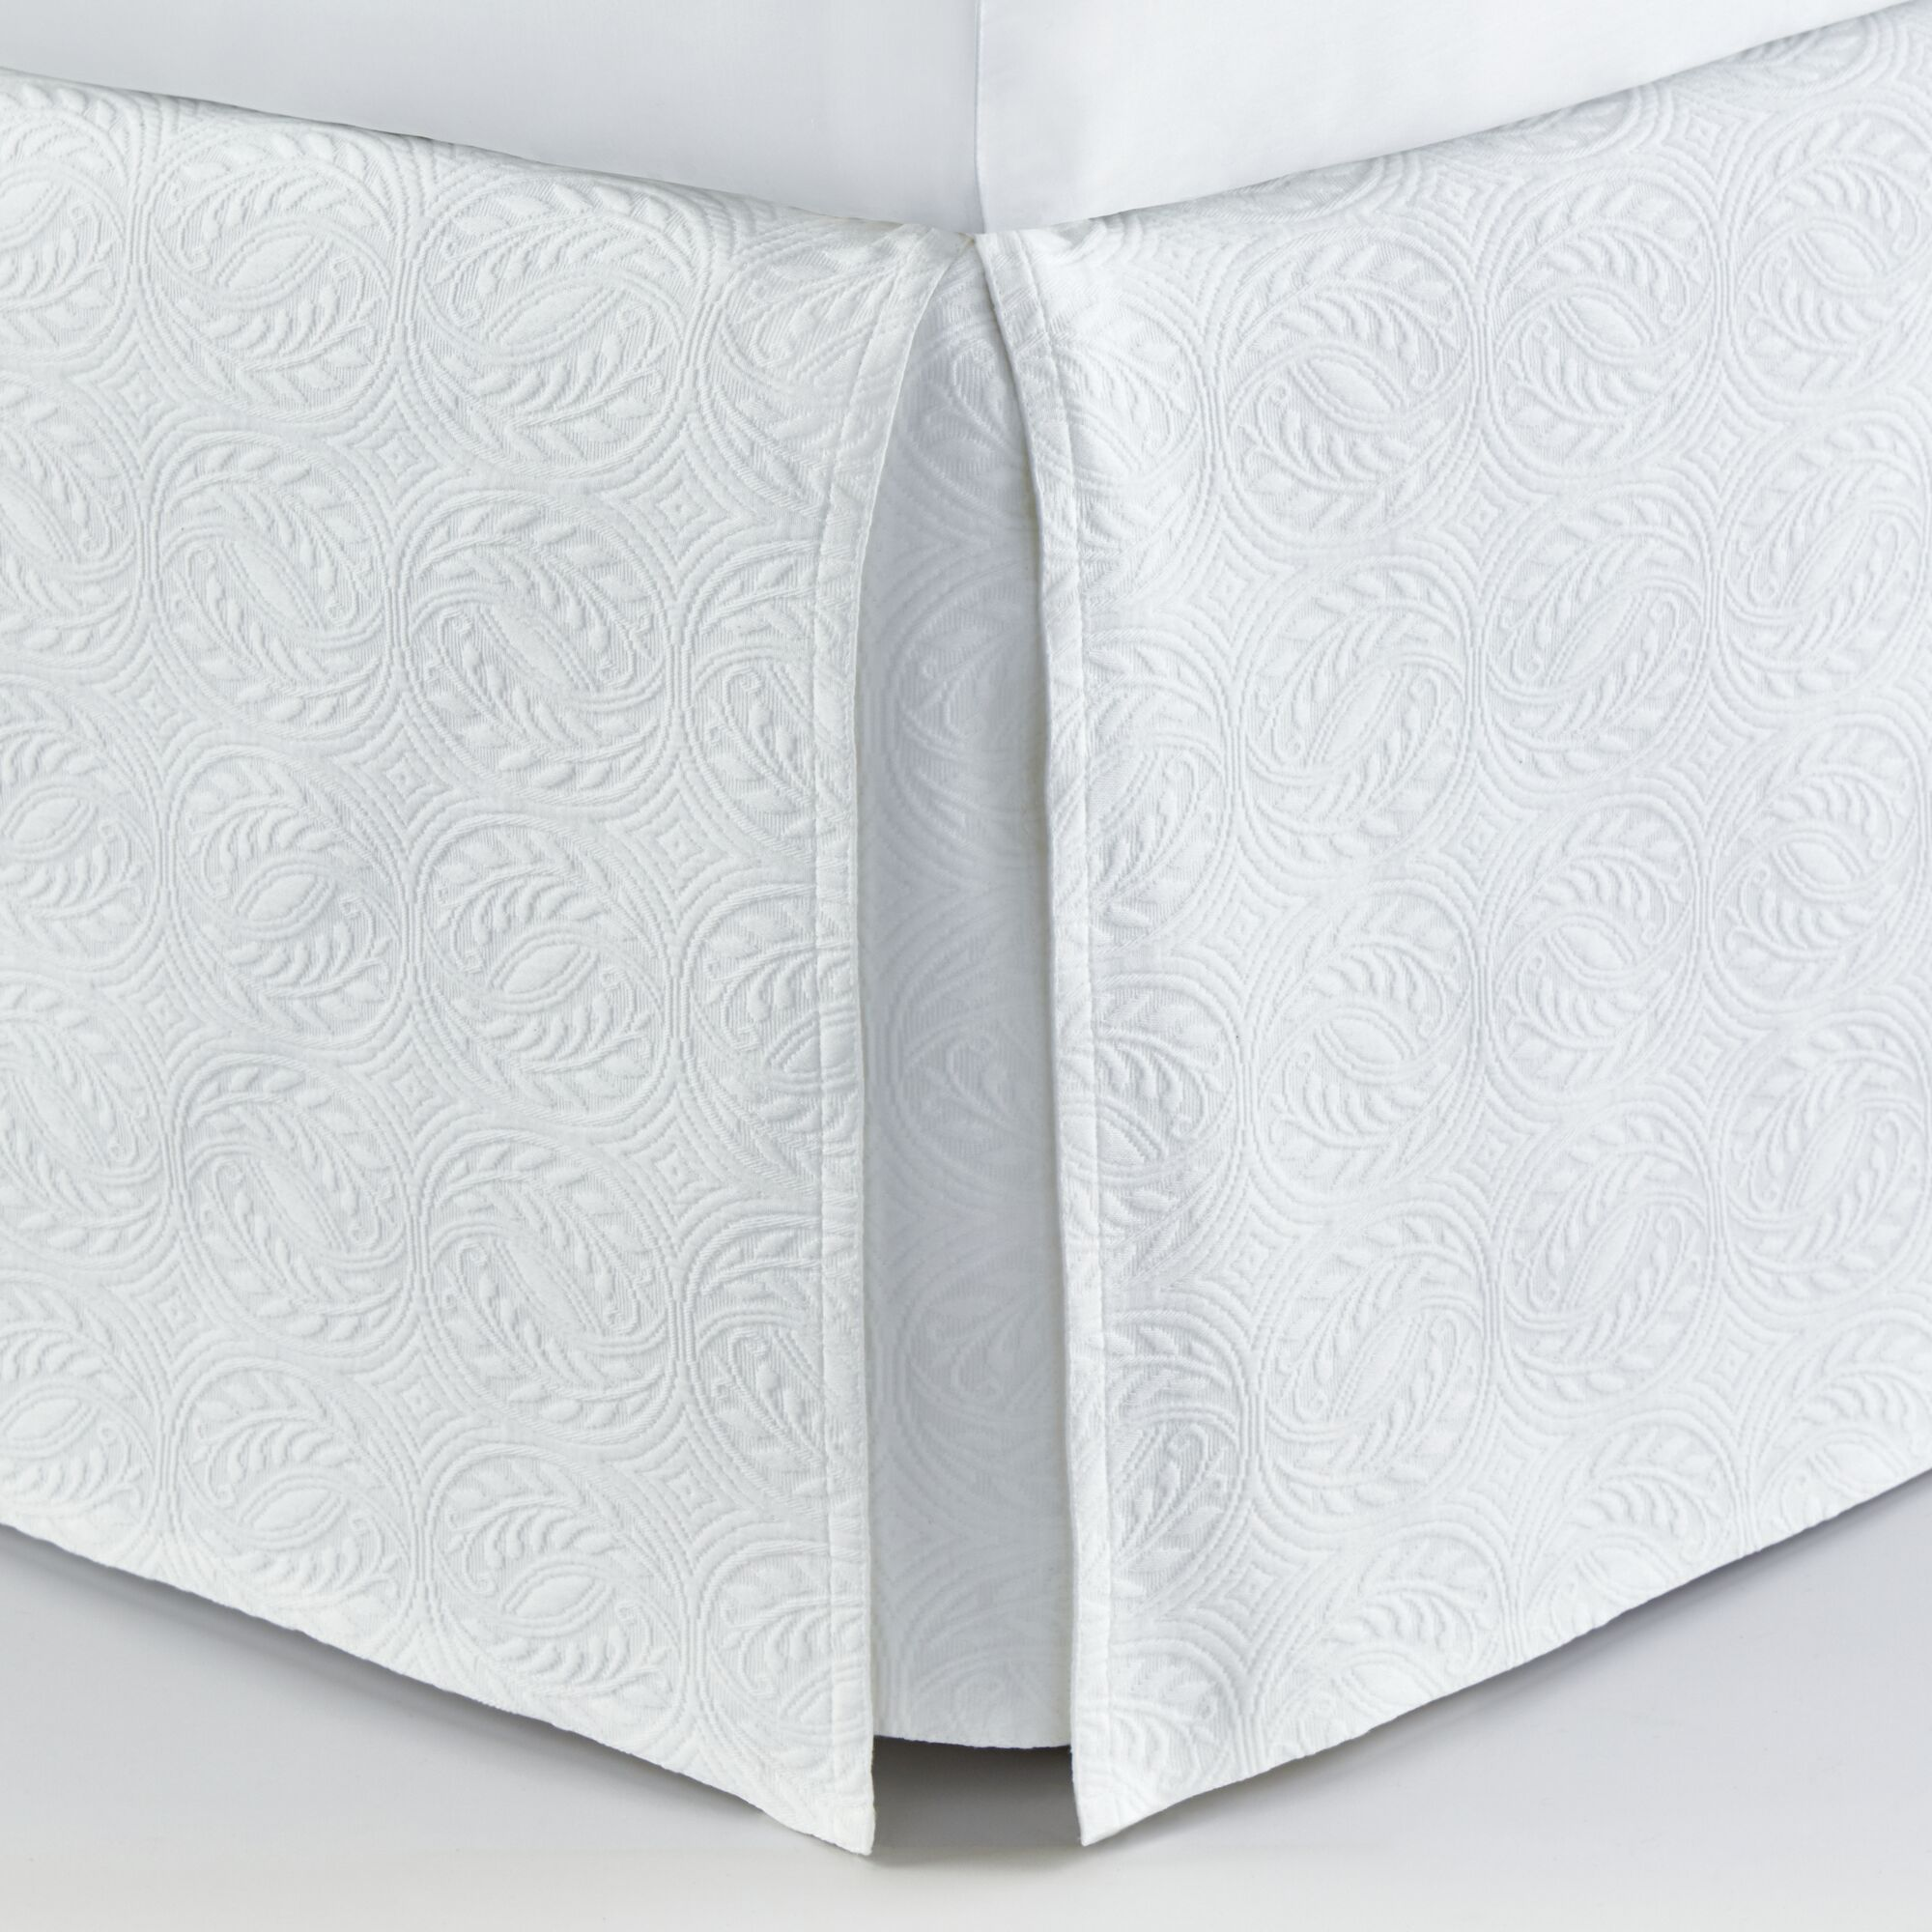 Signature Vienna Panel Bed Skirt Color: White, Size: Queen